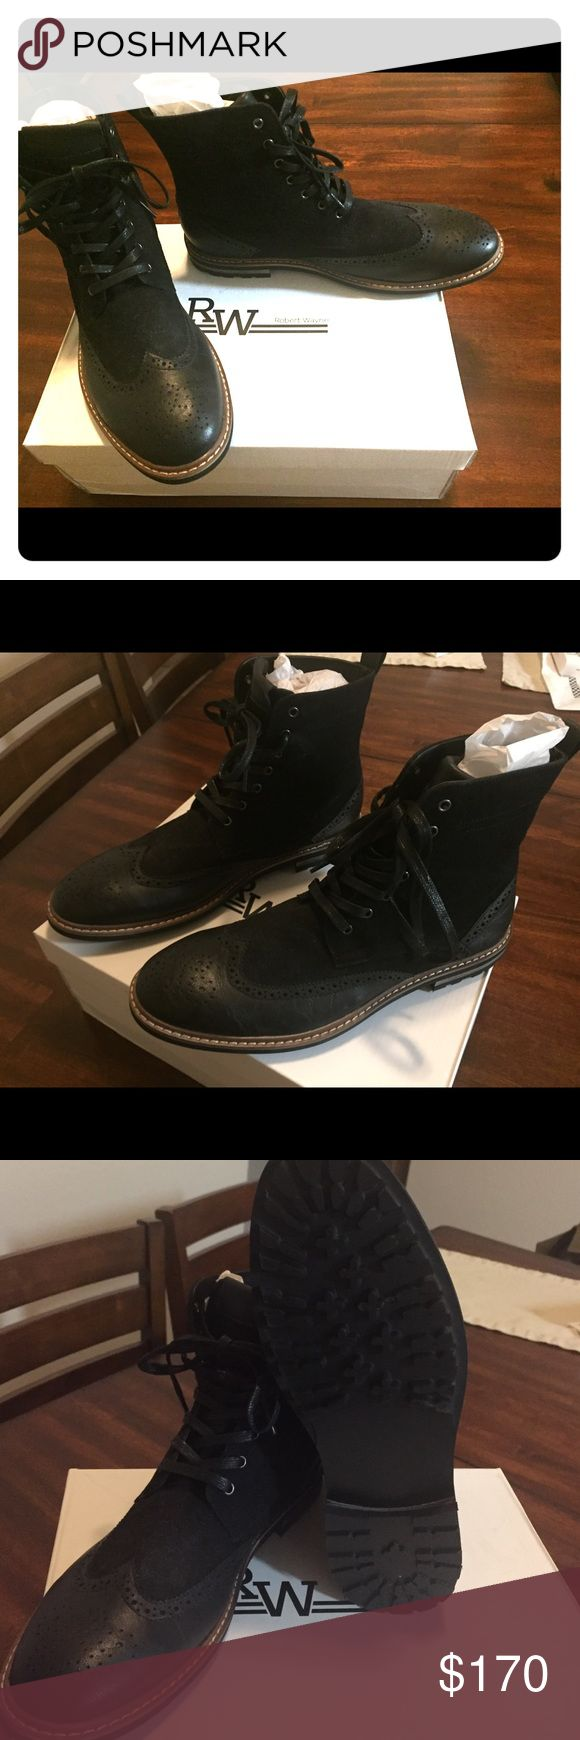 Robert Wayne Men's Brogue Boots Size US 9.5/ EU 41 Robert Wayne's Brogue style boots brand new! In the color black. Size US Men's 9.5/European size 41. Great boots to go clubbing or to a holiday party. Robert Wayne Shoes Boots